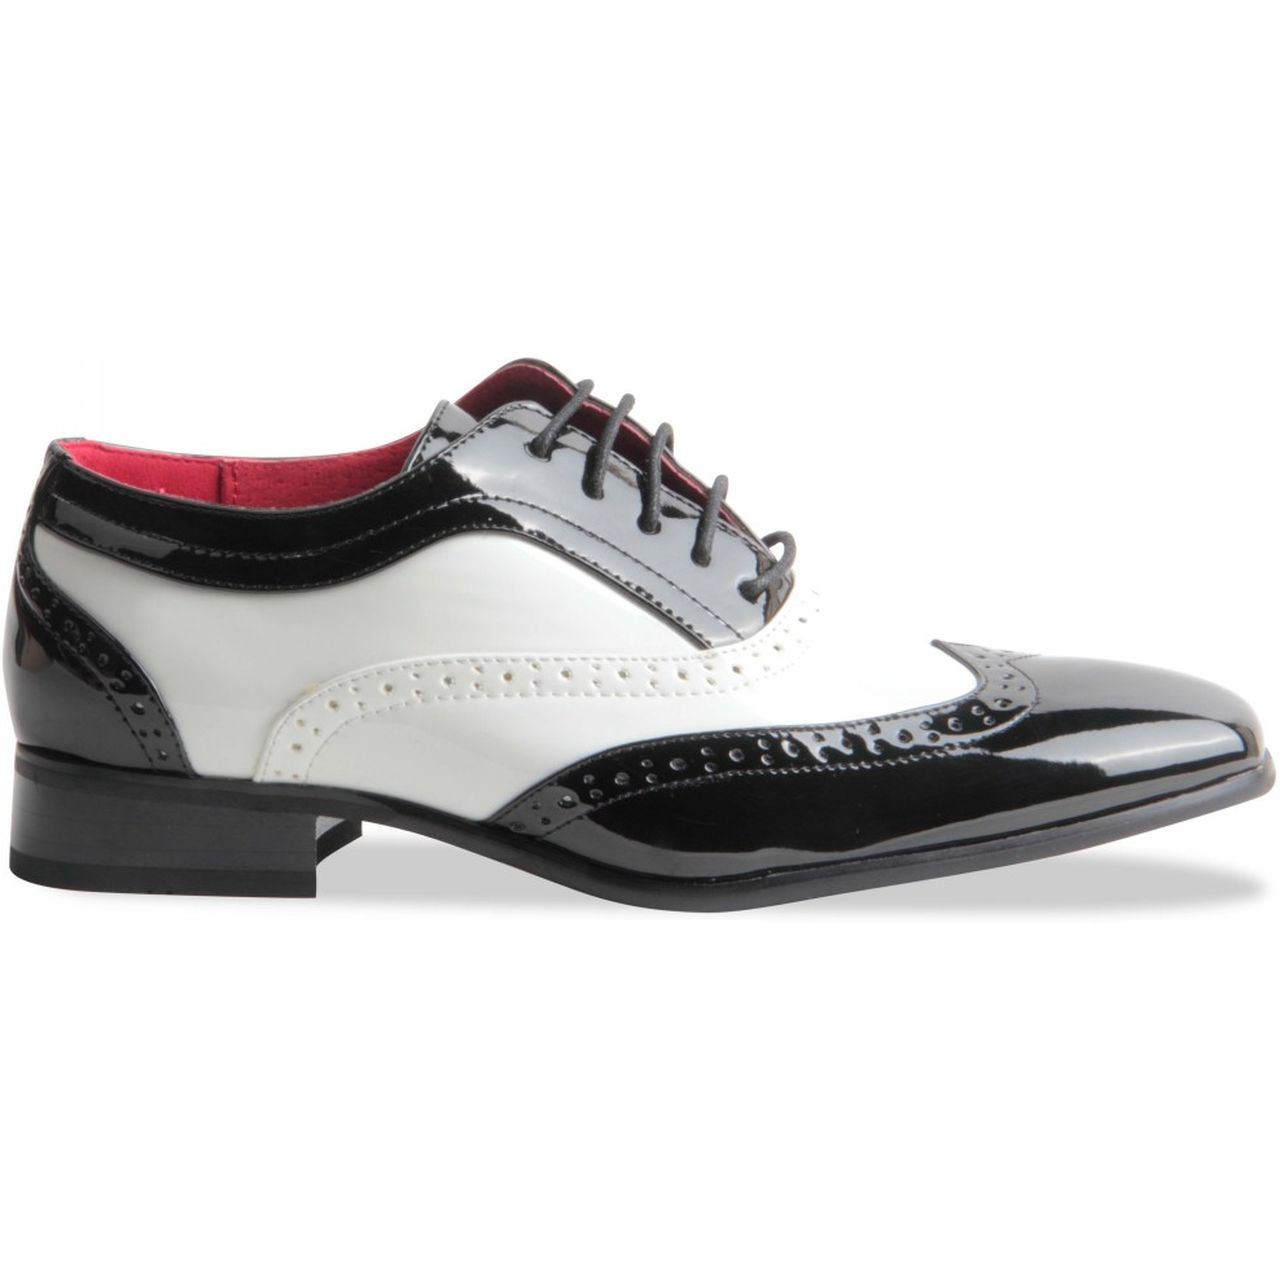 Grey Dress Shoes Amazon